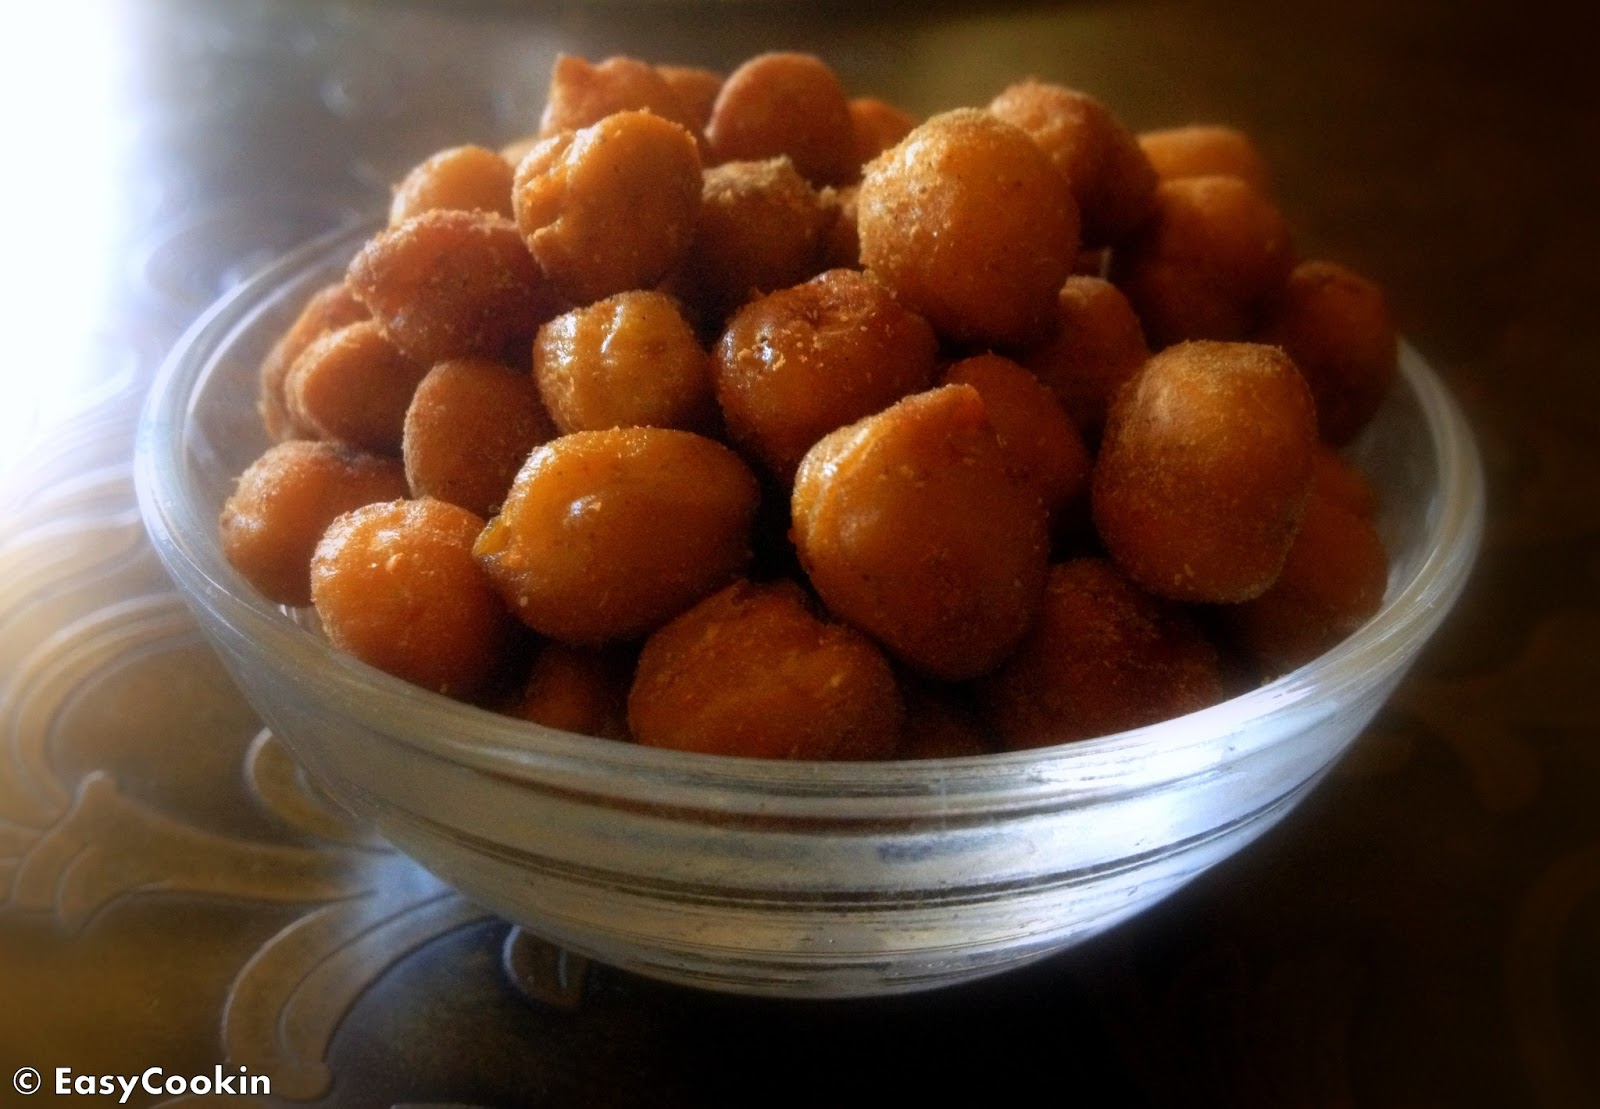 EasycookinwithMolly: Spicy Oven Roasted Chickpeas Snack - High Protein